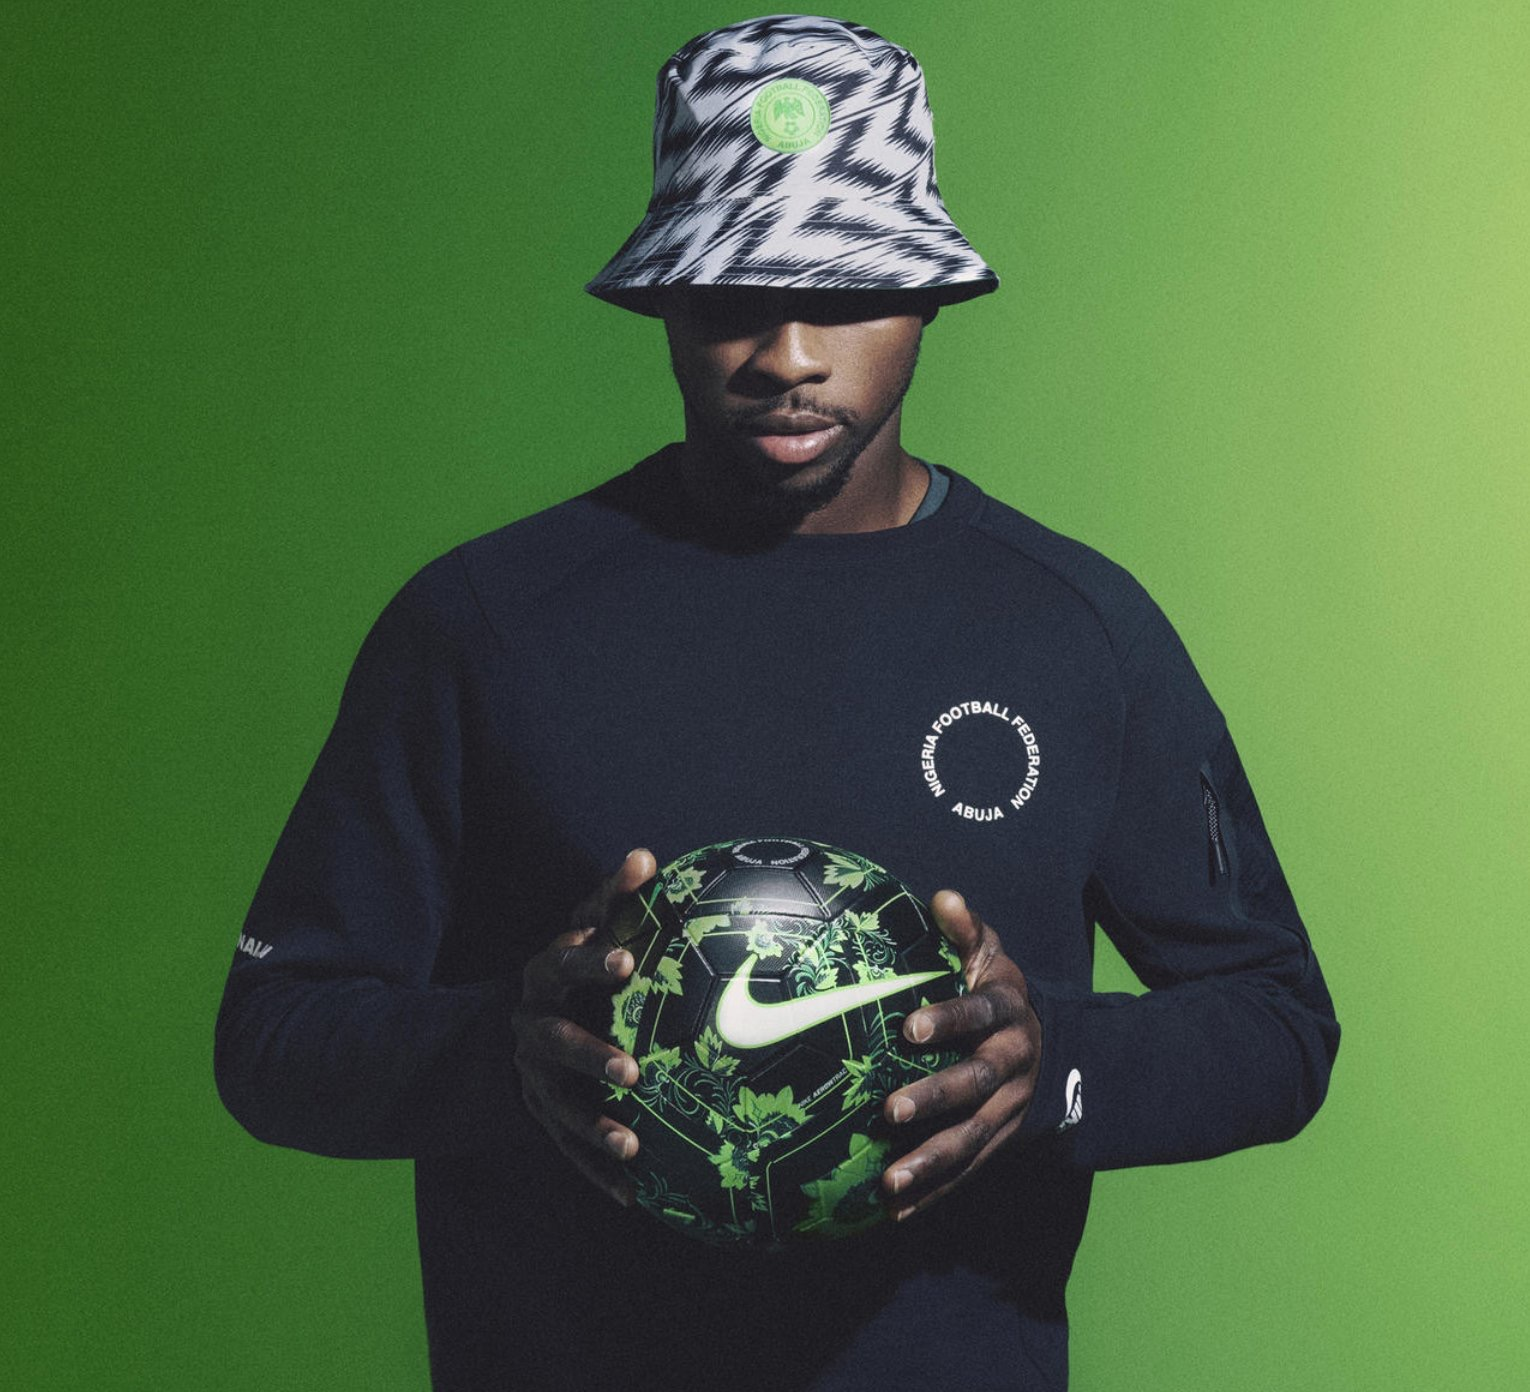 5d3fa756f That seems to be the truth about everything going on with the games and  media manipulation Nike perfected with the rollout of the Nigerian Jerseys.